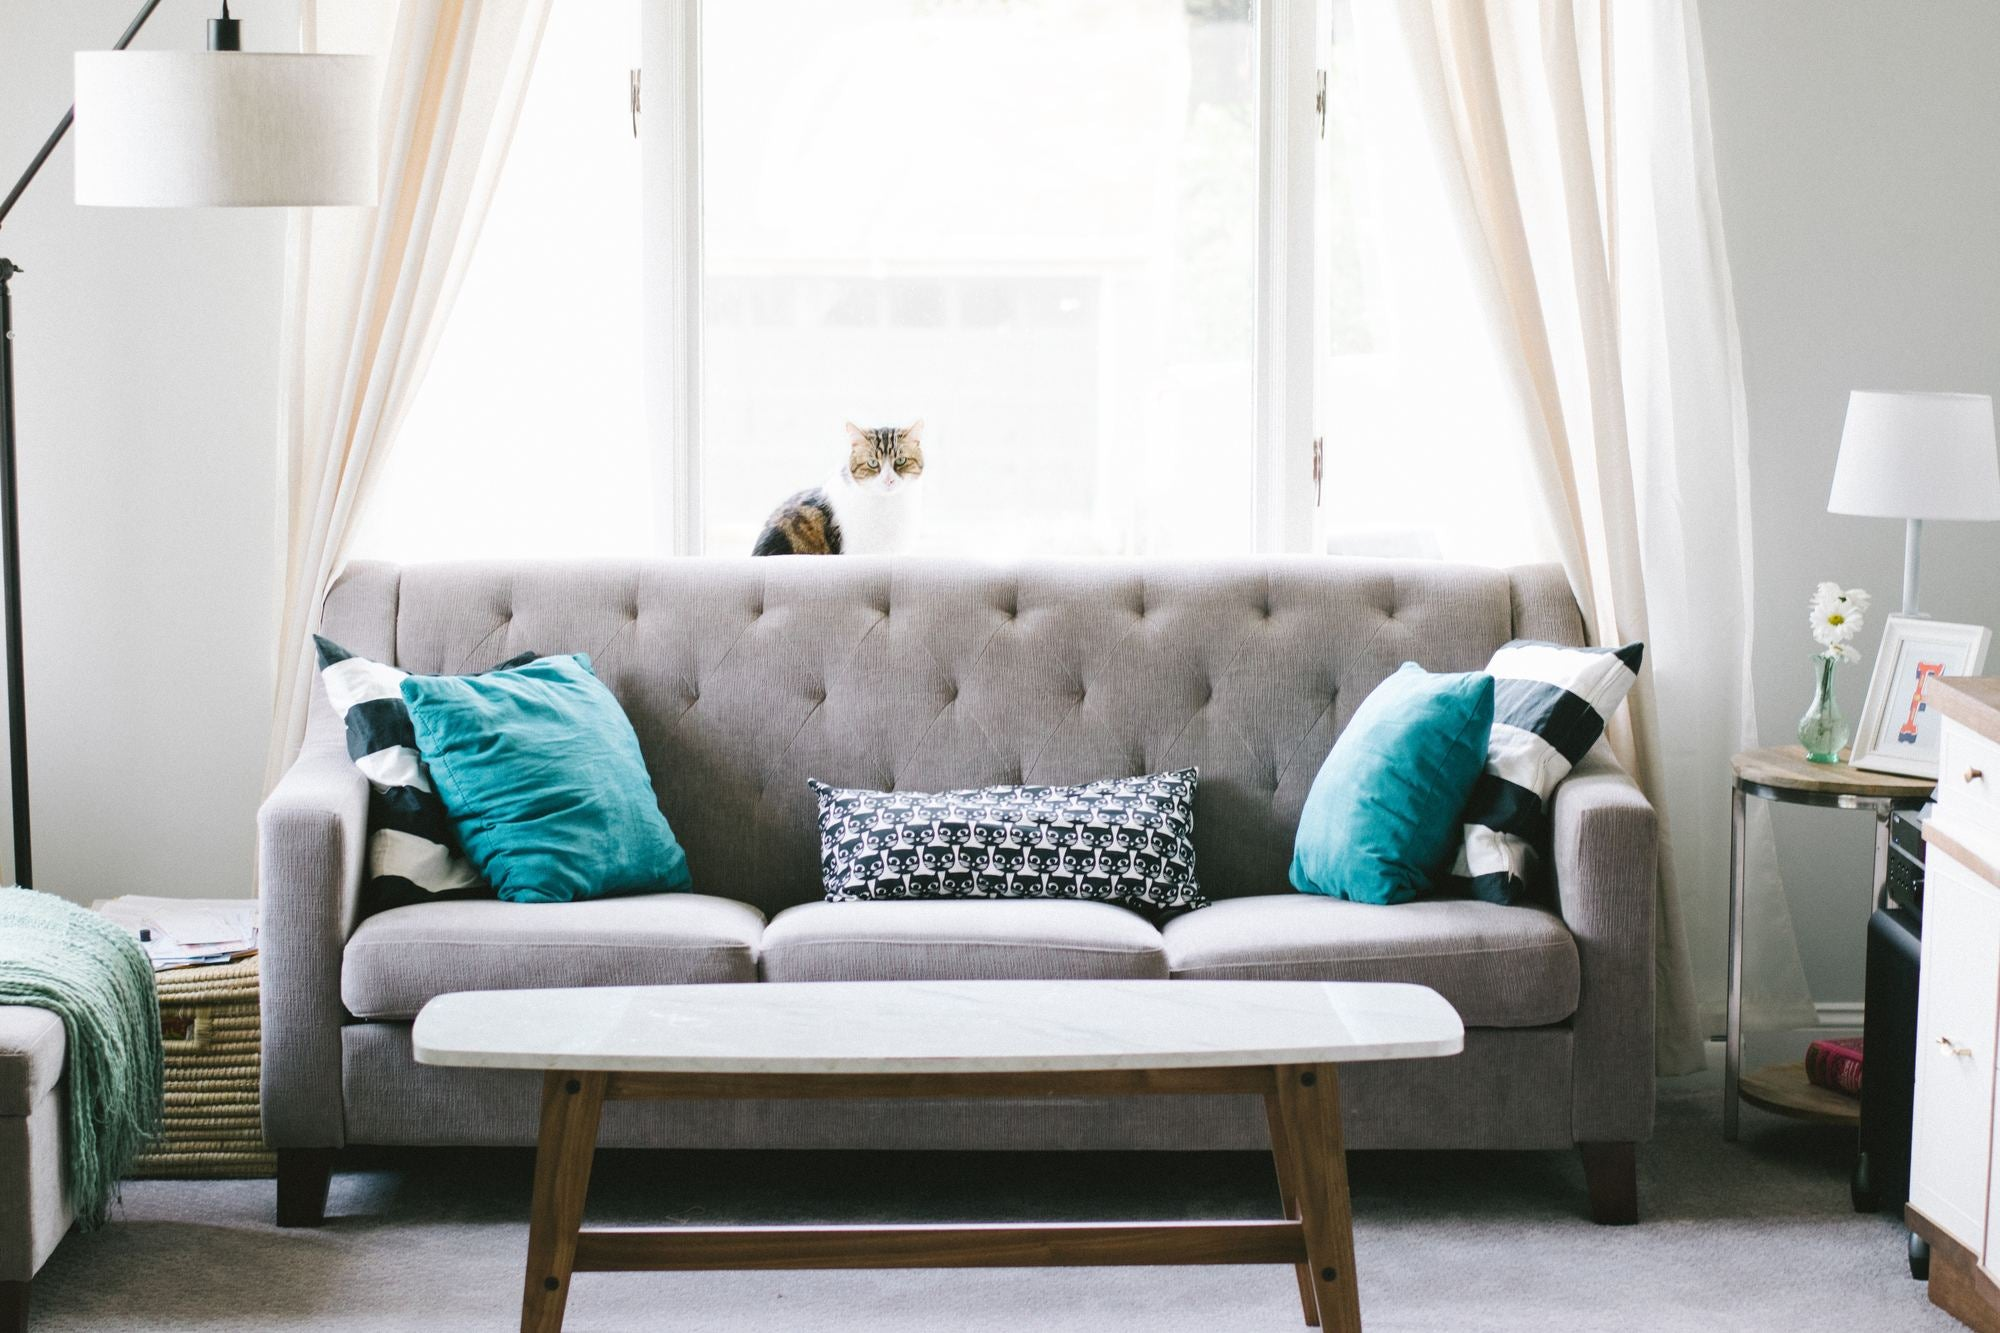 How To Find The Best Online Furniture Store